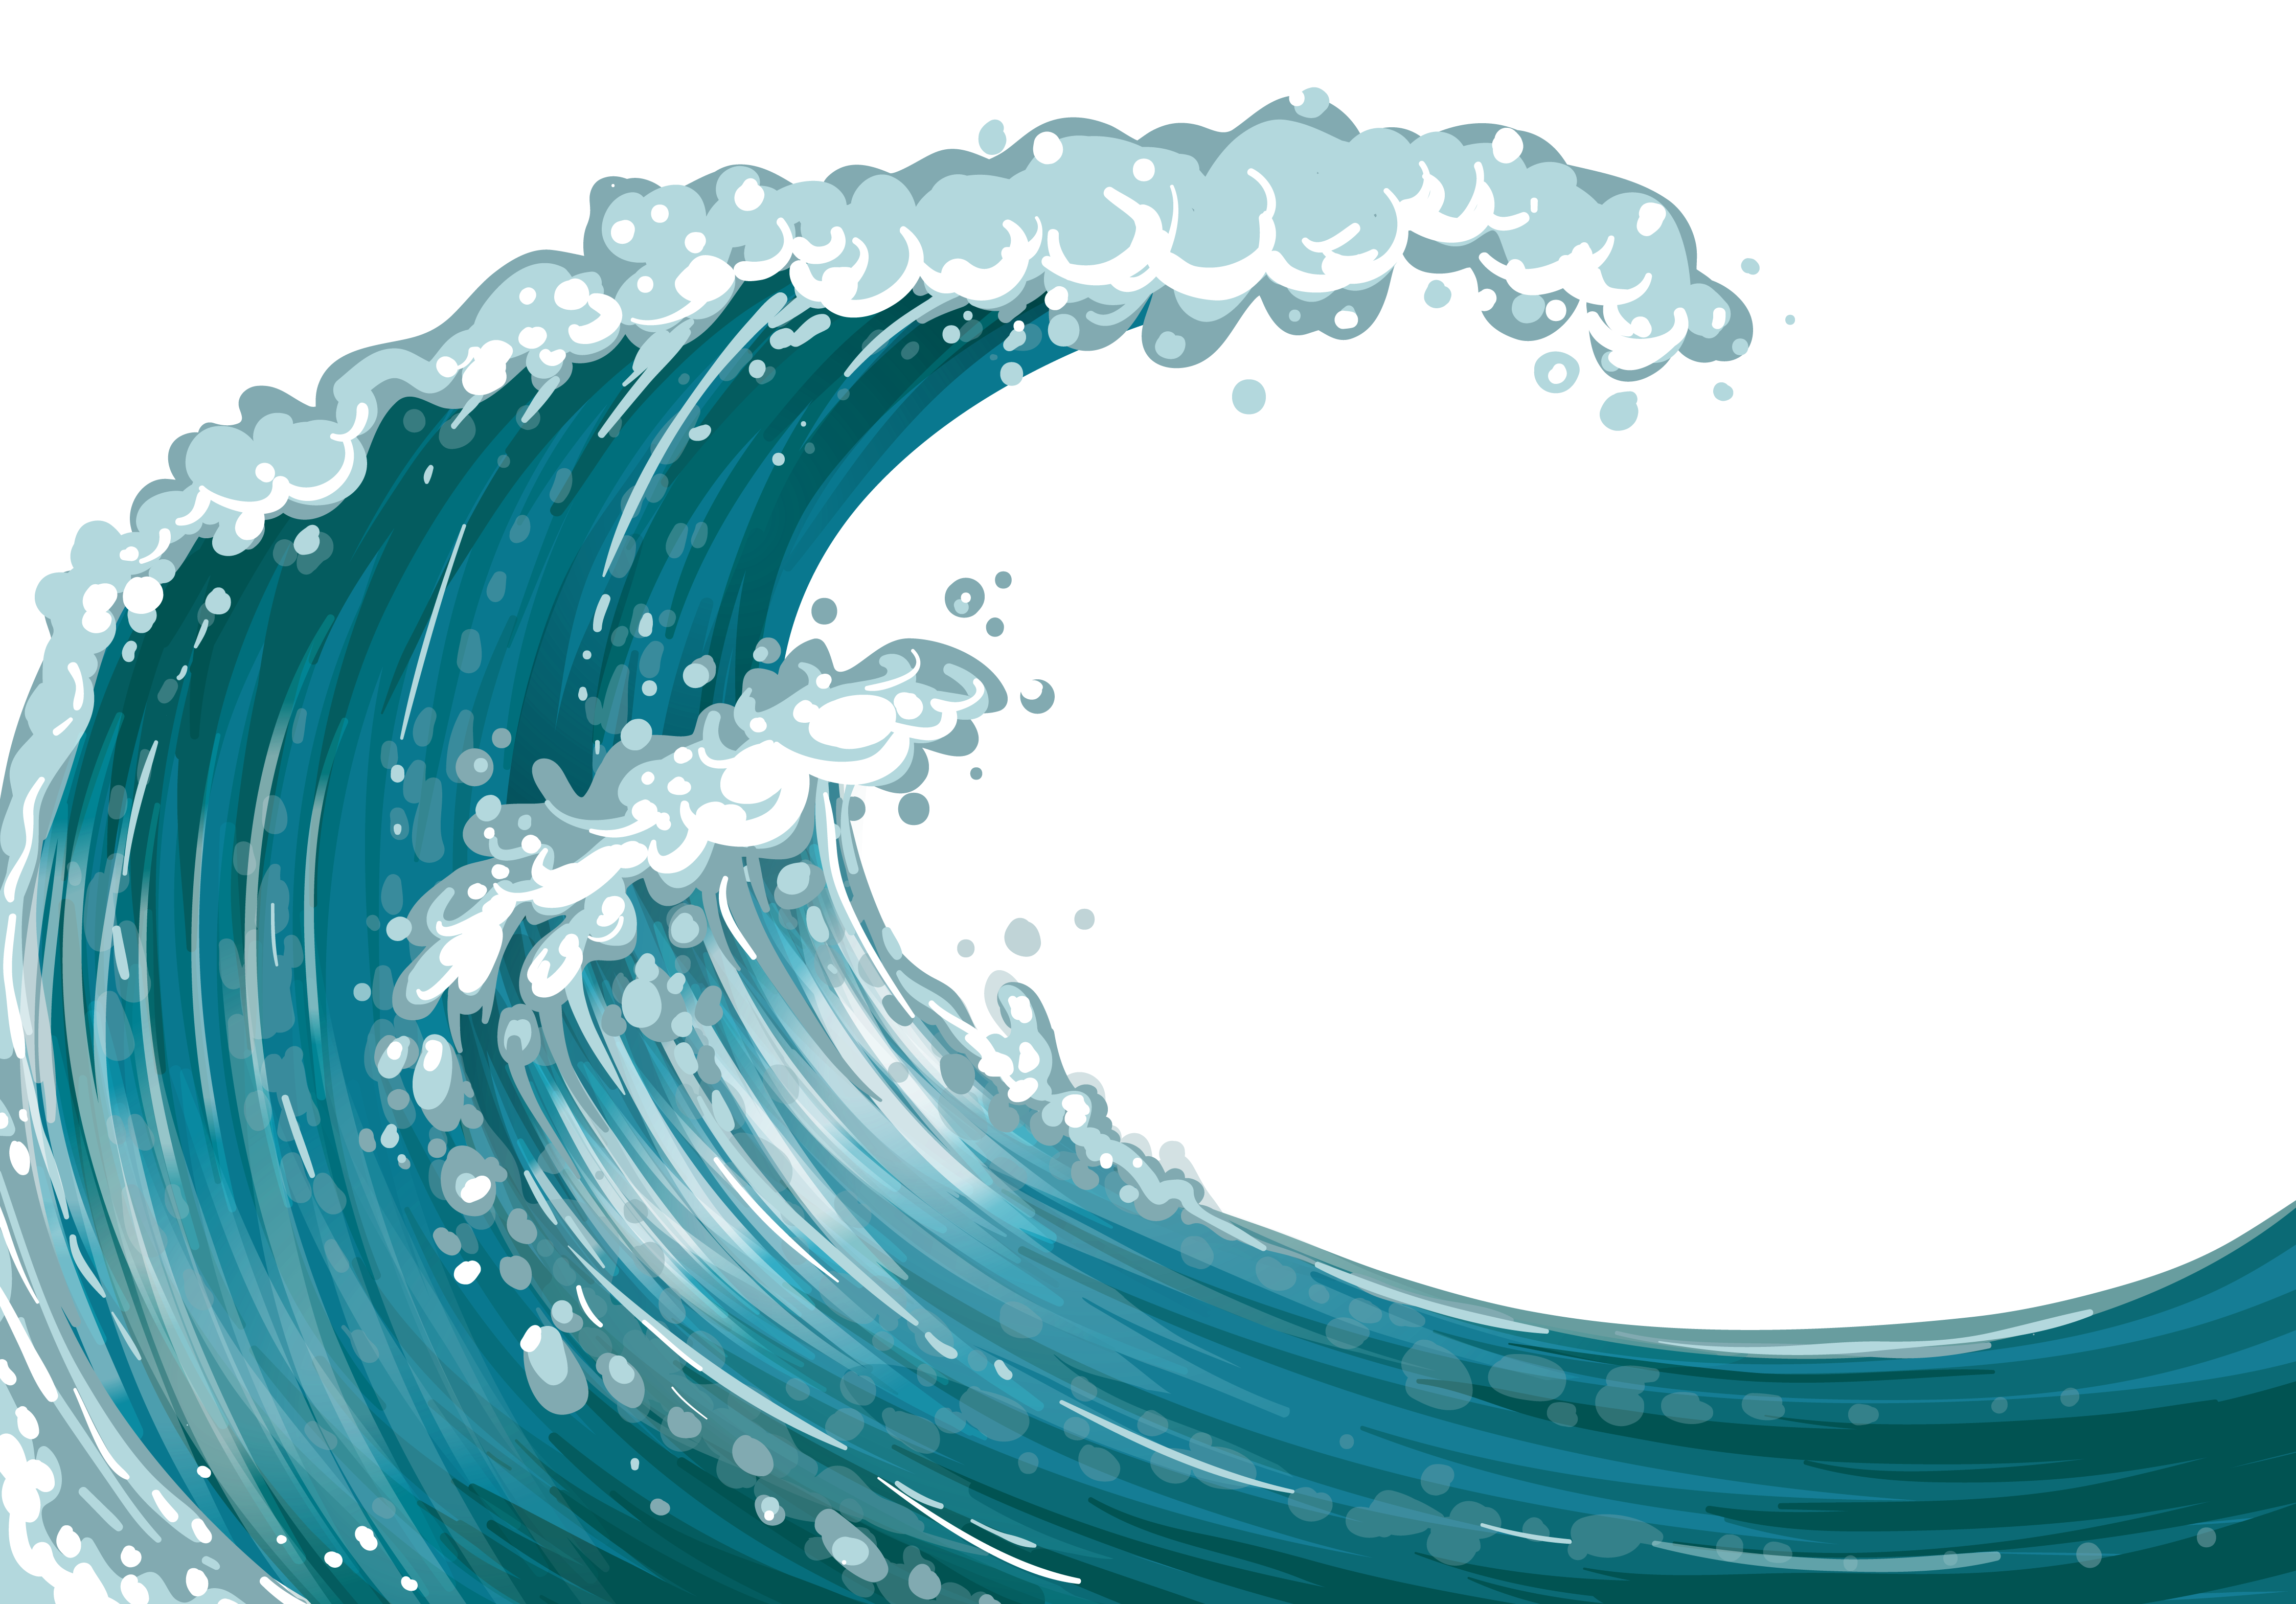 Wave clipart curling wave. Free picture black